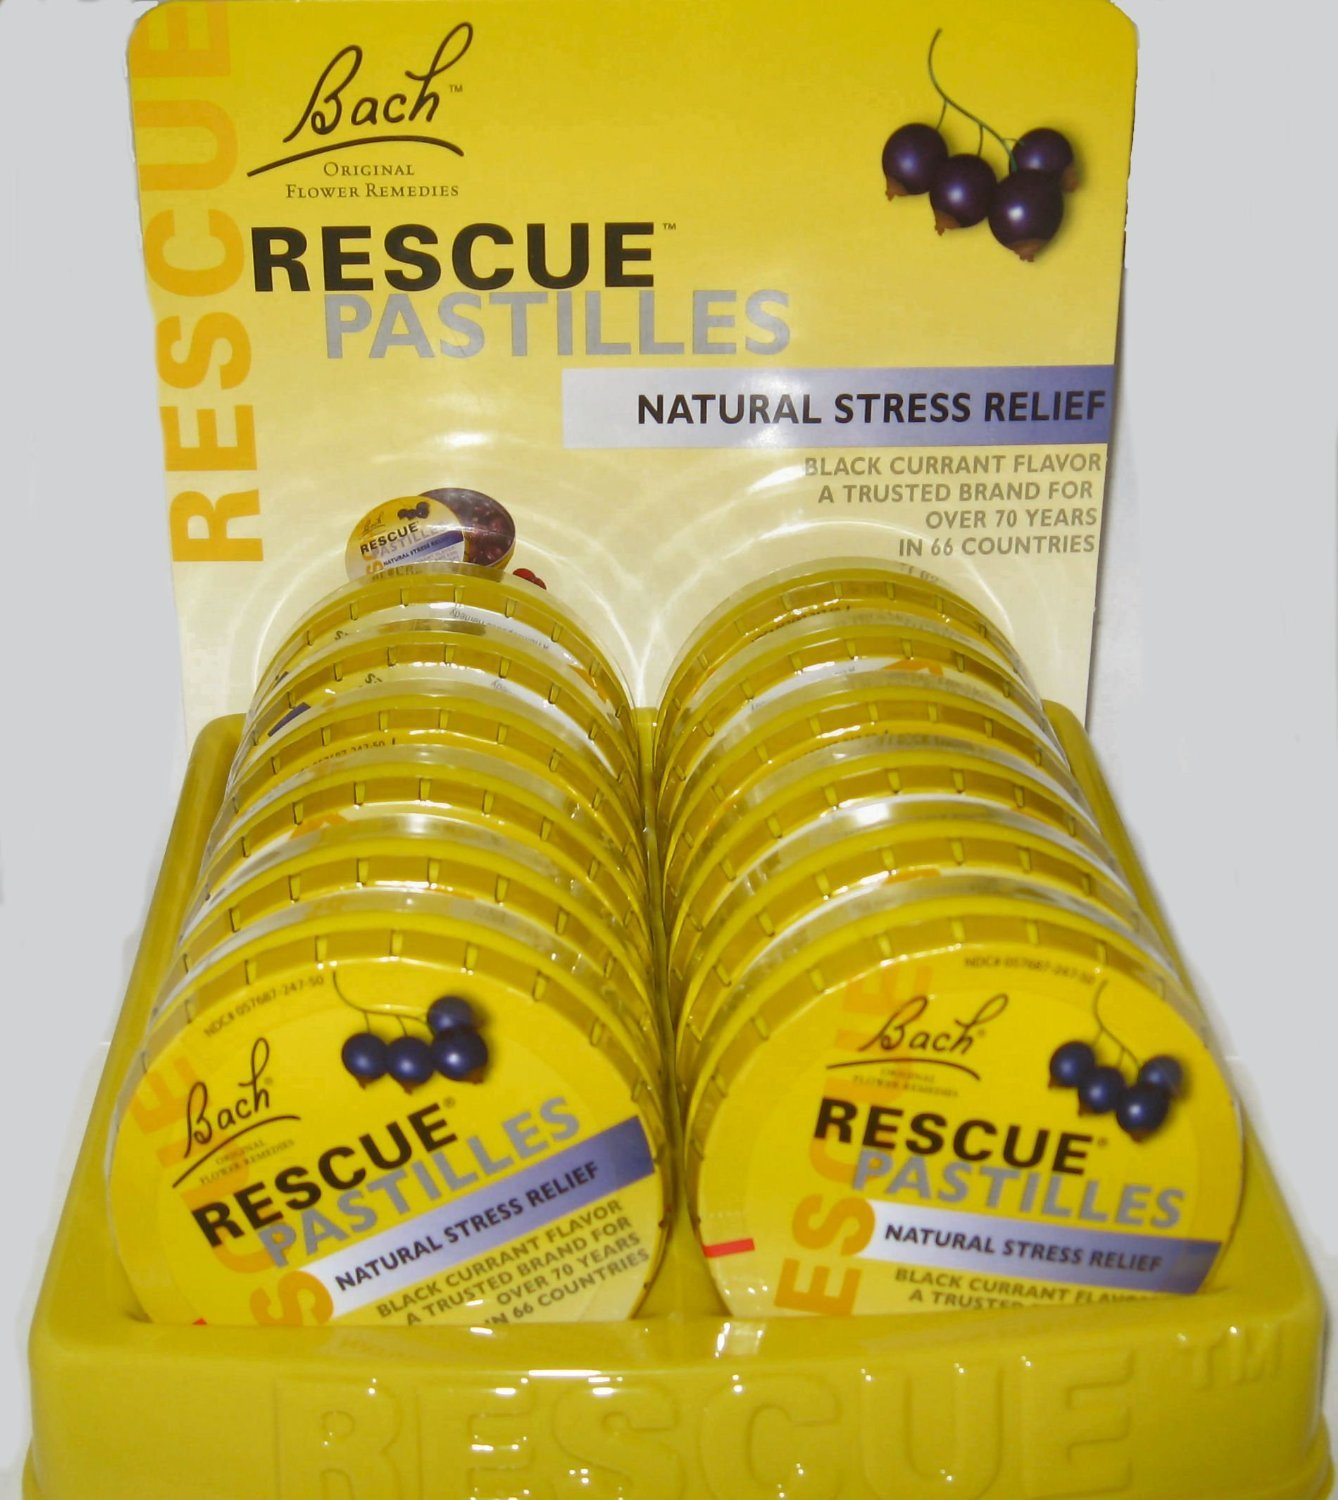 Nelson Bach USA - Rescue Remedy Pastille, Black Currant Flavor, 12 packs